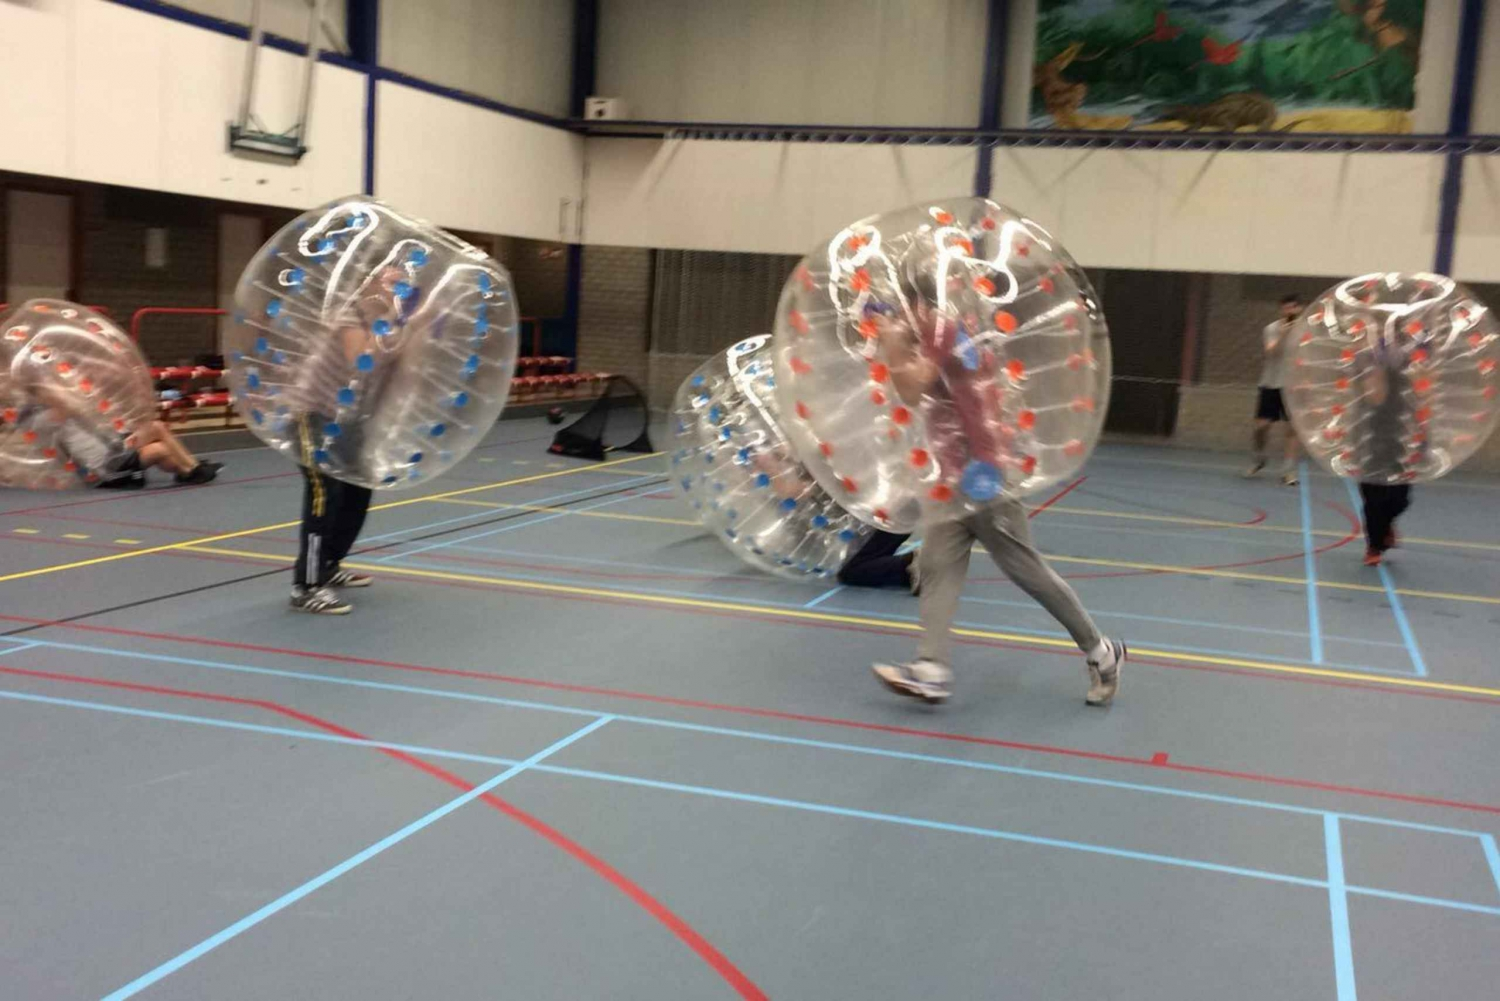 Amsterdam Bubble Football: 1-Hour Outdoor Game